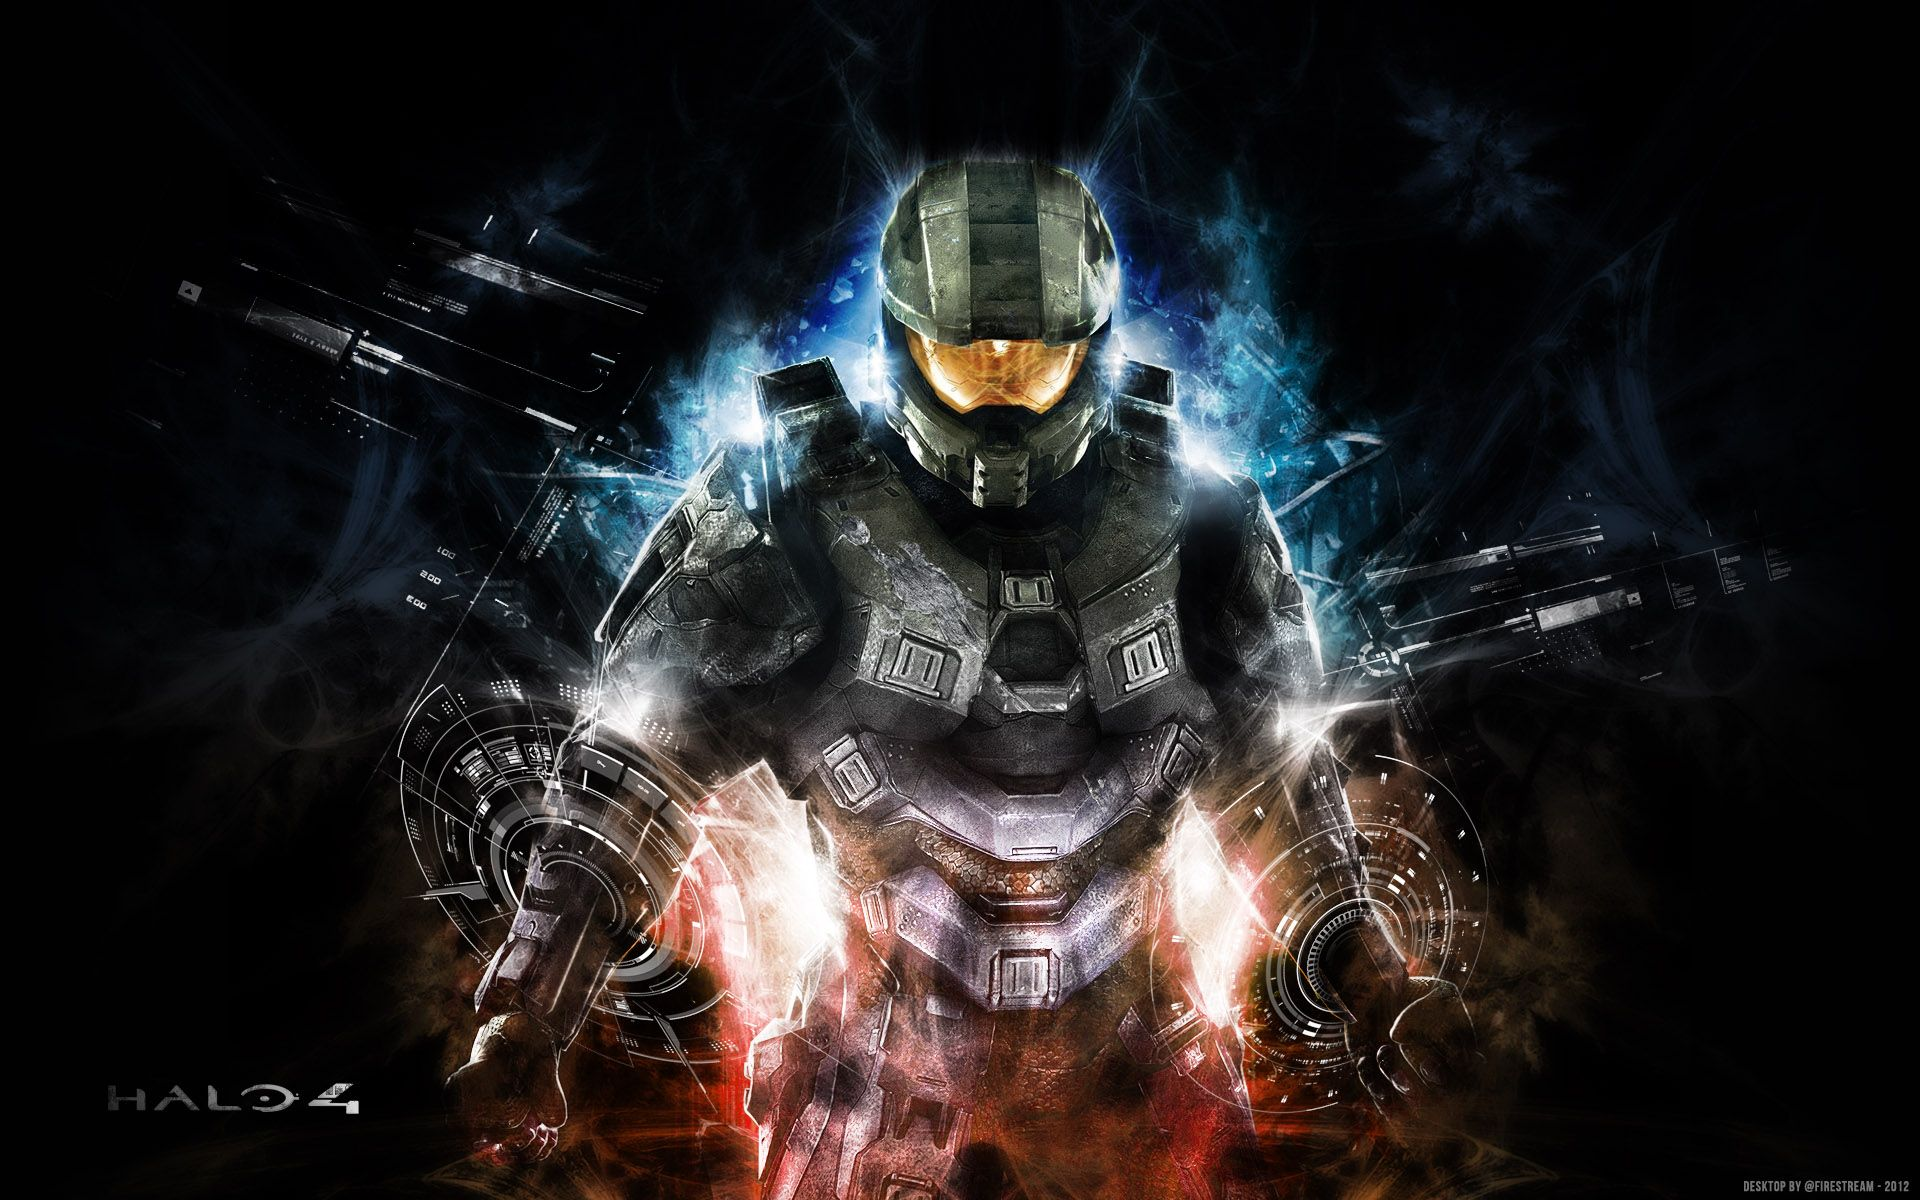 Awesome Halo Theme With Hd Wallpapers 1280 720 Halo 4 Wallpapers